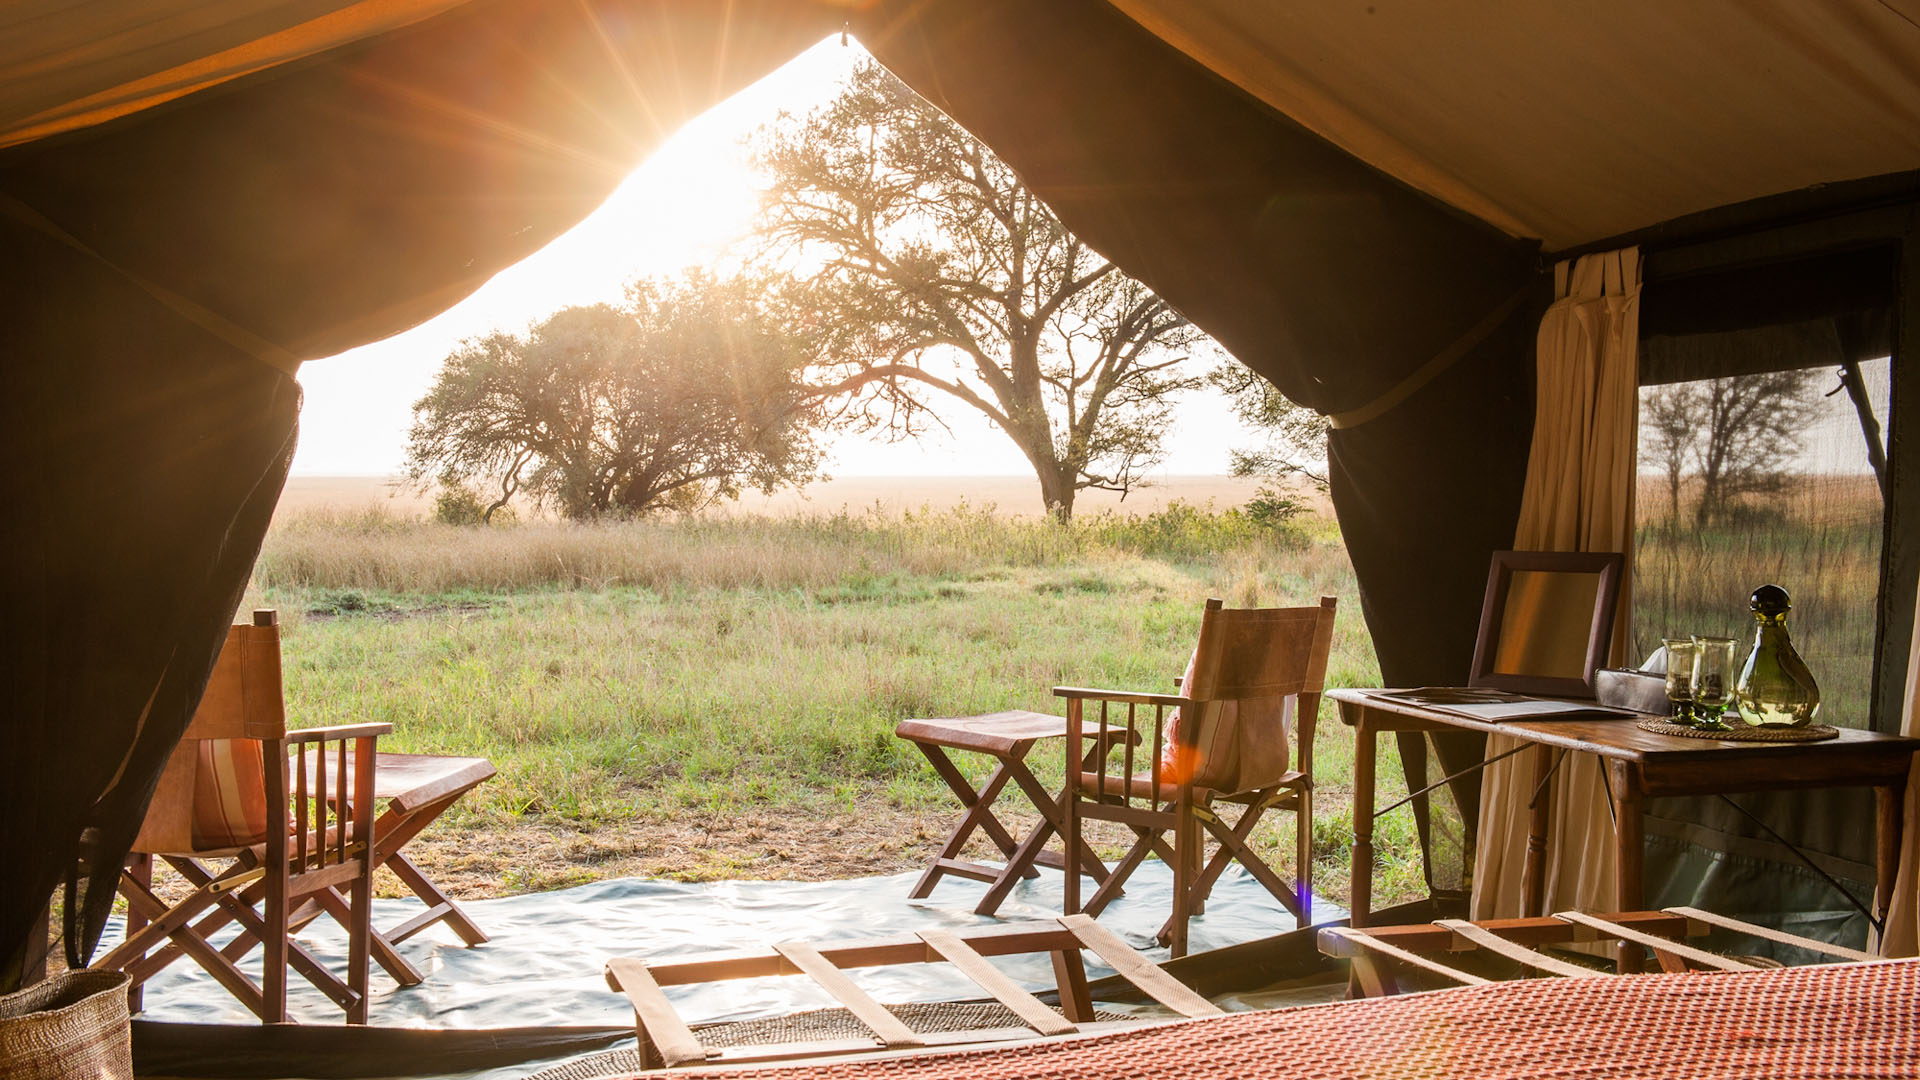 Serengeti Safari Camp Tanzania Natural World Safaris